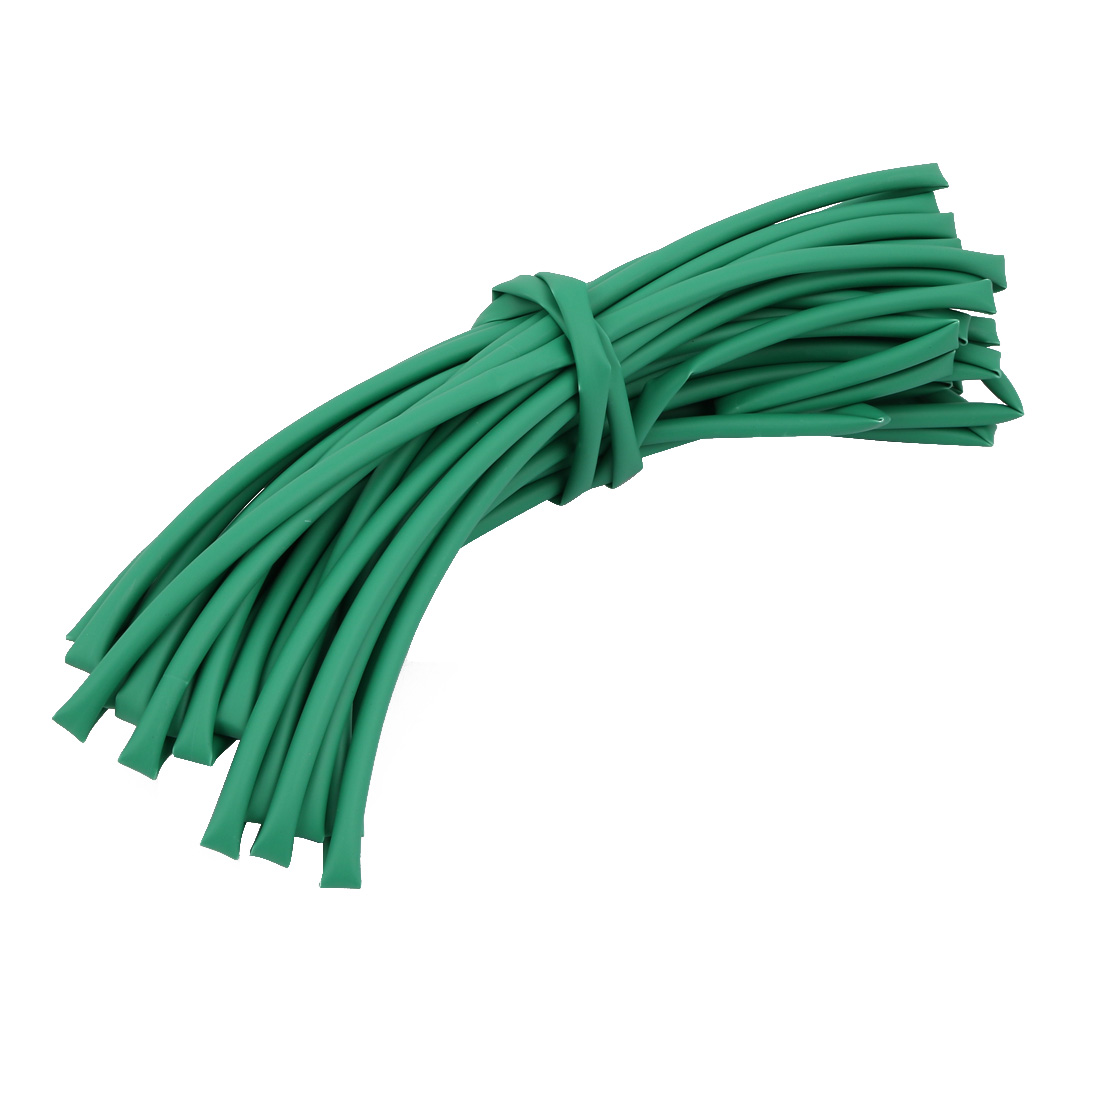 10M 0.18in Inner Dia Polyolefin Flame Retardant Tube Green for Wire Repairing